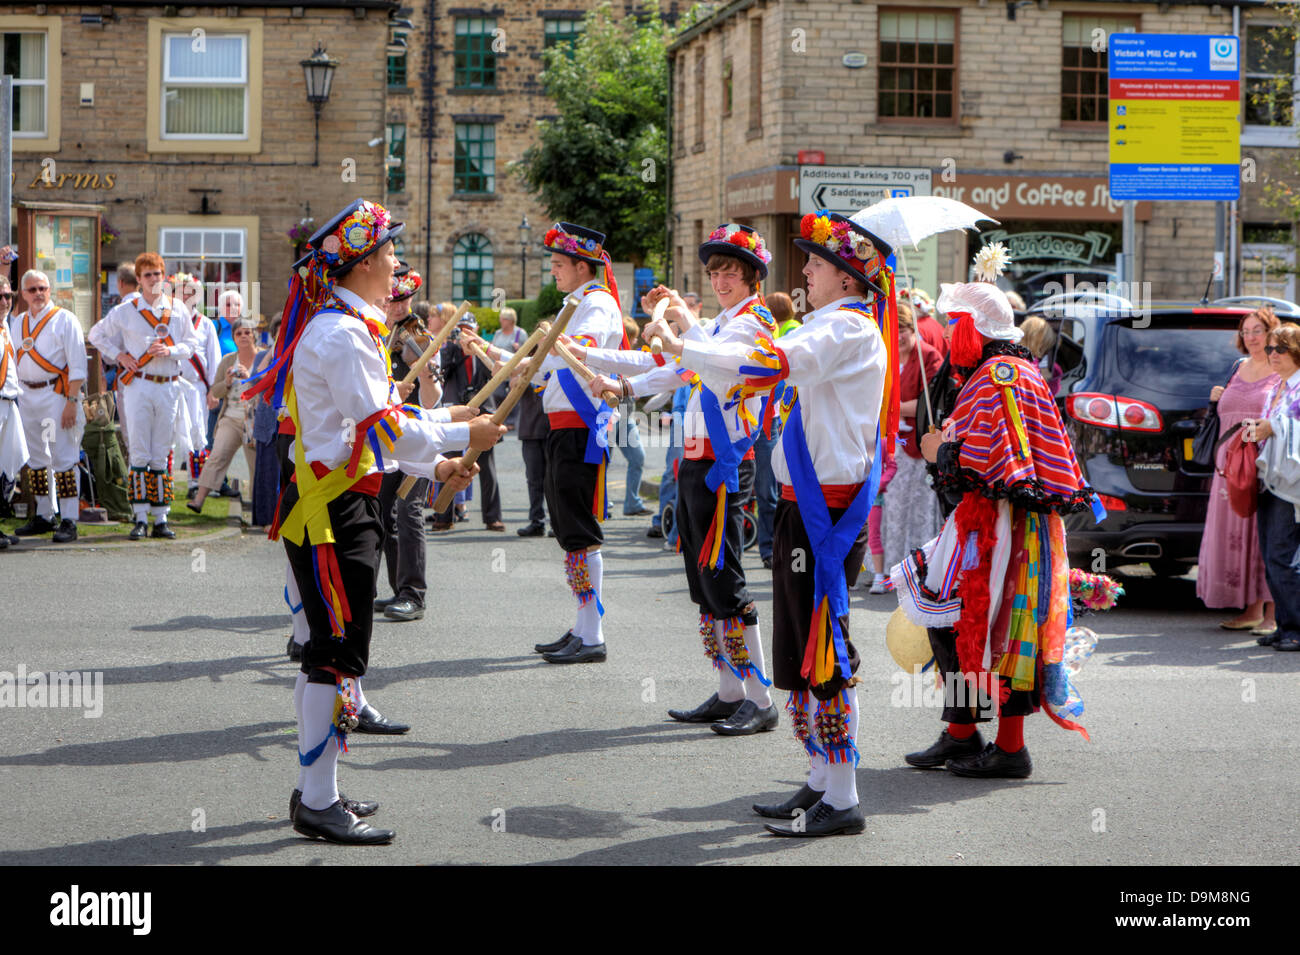 Morris Dancers at the Rushcart Ceremony on the 20th of August, 2011 in Saddleworth, UK. - Stock Image